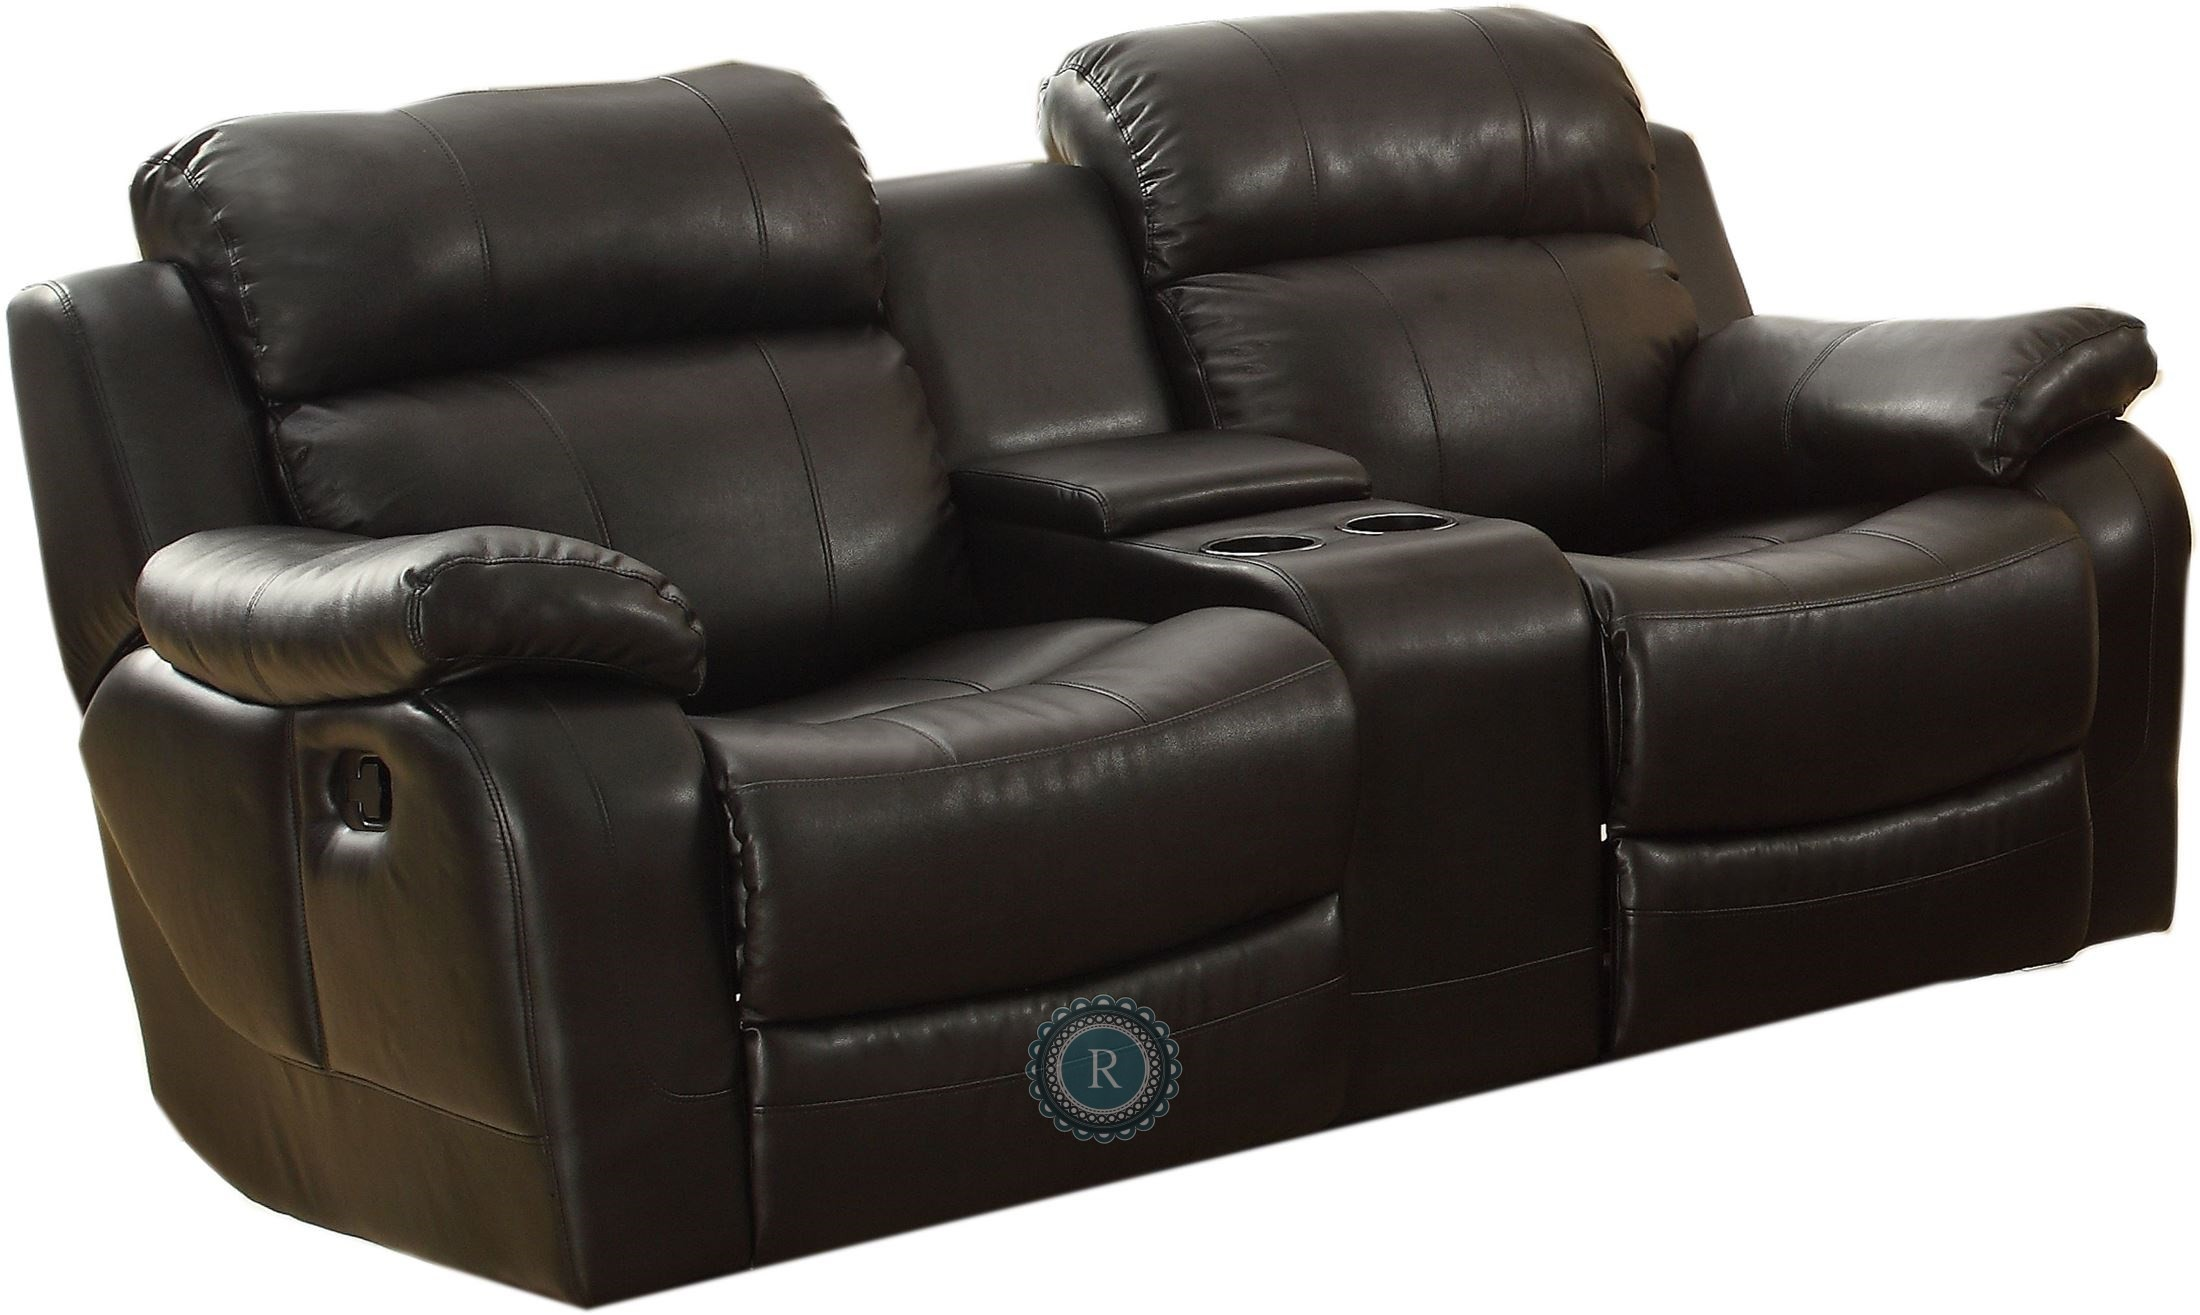 glider sofa french provincial reupholstered marille black double reclining loveseat with center